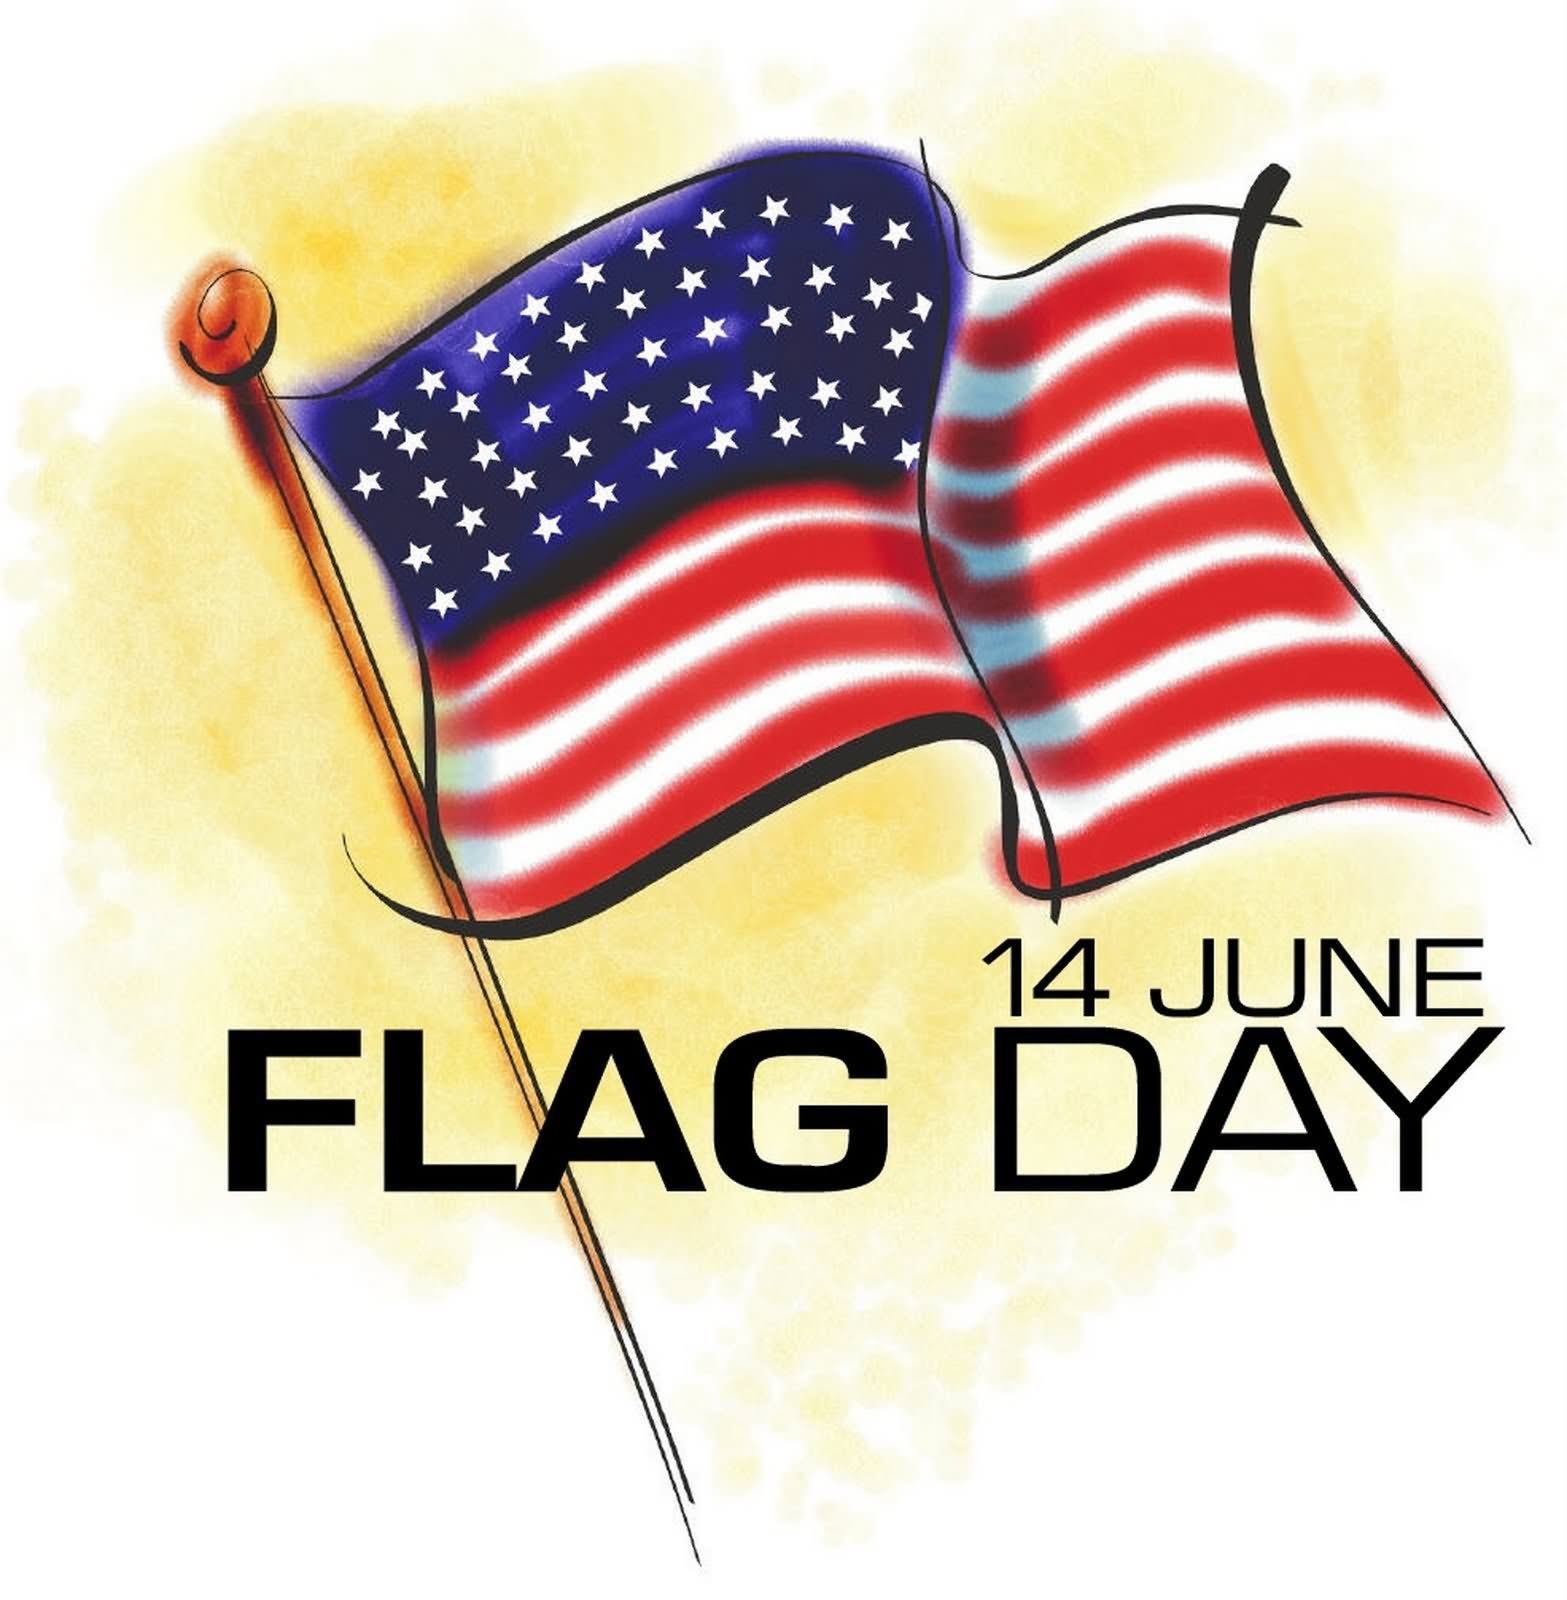 14 June American Flag Day Clipart-14 June American Flag Day Clipart-1